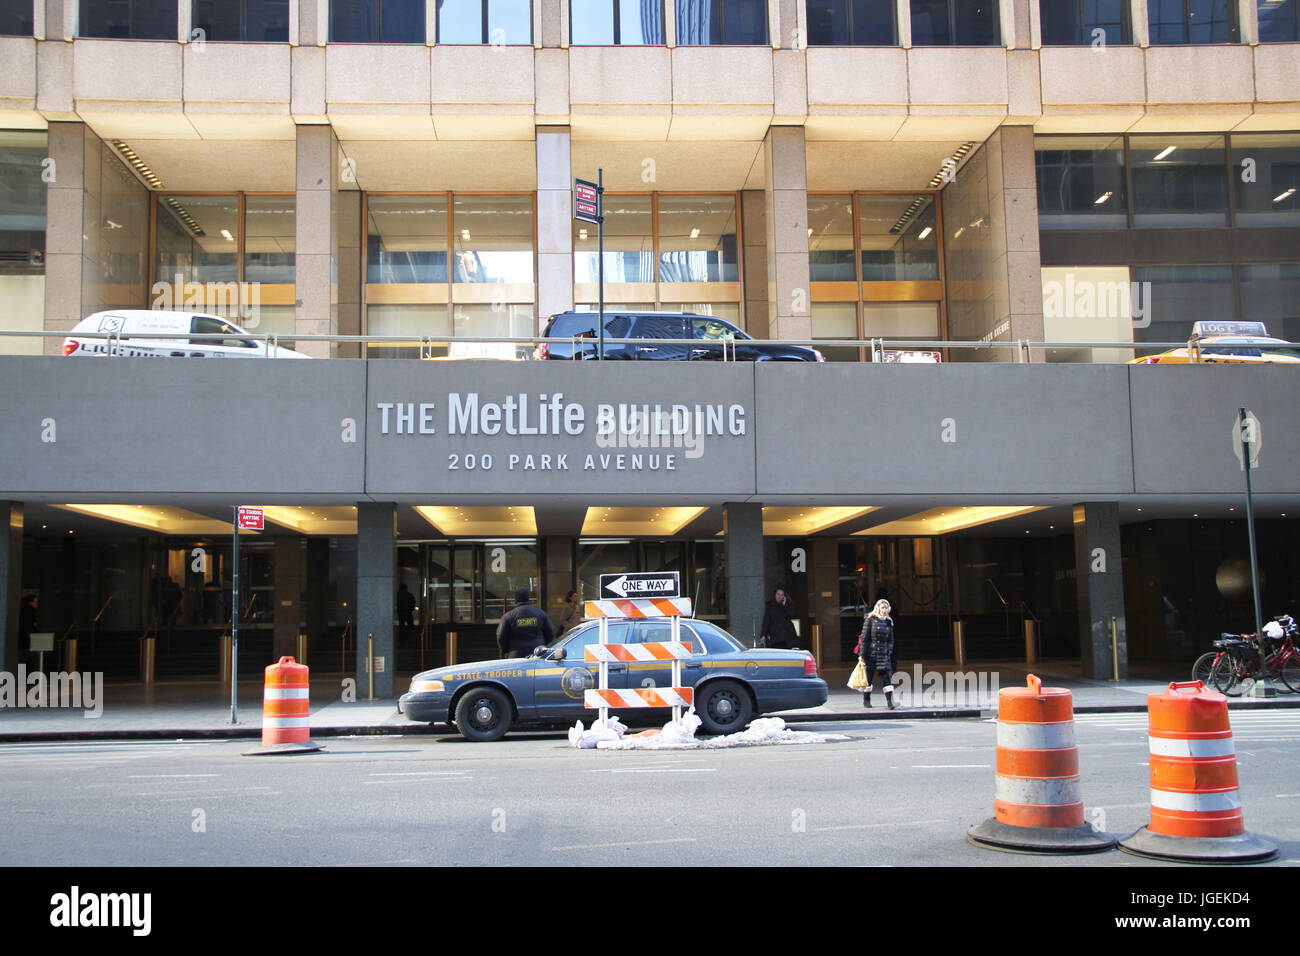 The Metlife Building,  Times Square, New York, United States - Stock Image